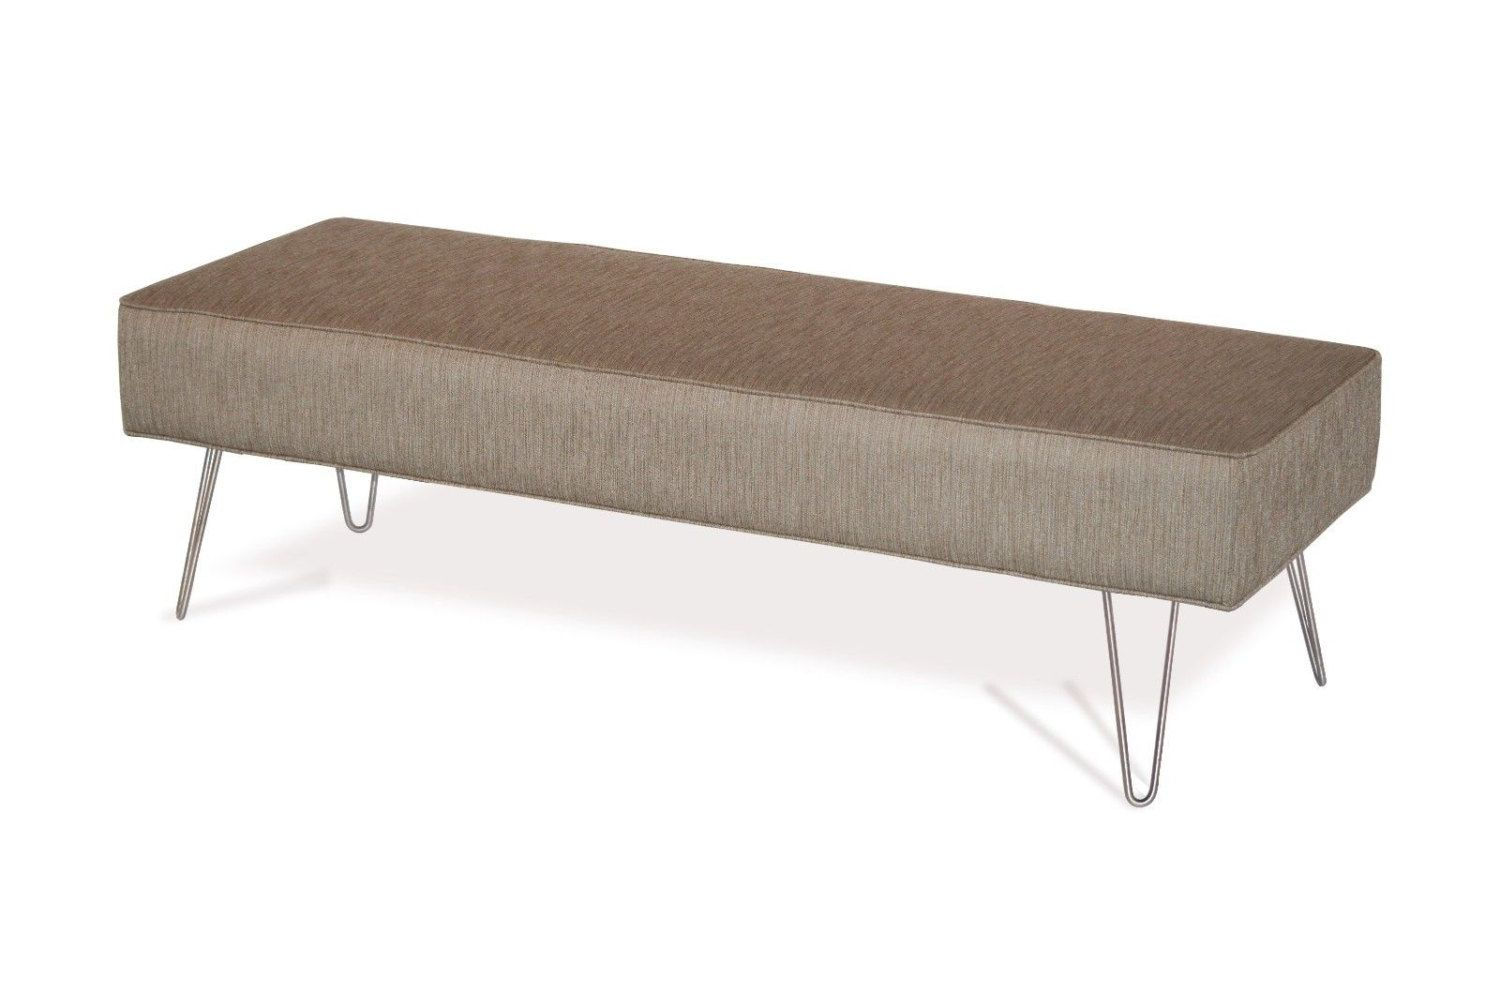 Mid Century Modern Fabric Upholstered Bench Ottoman Coffee Table ...